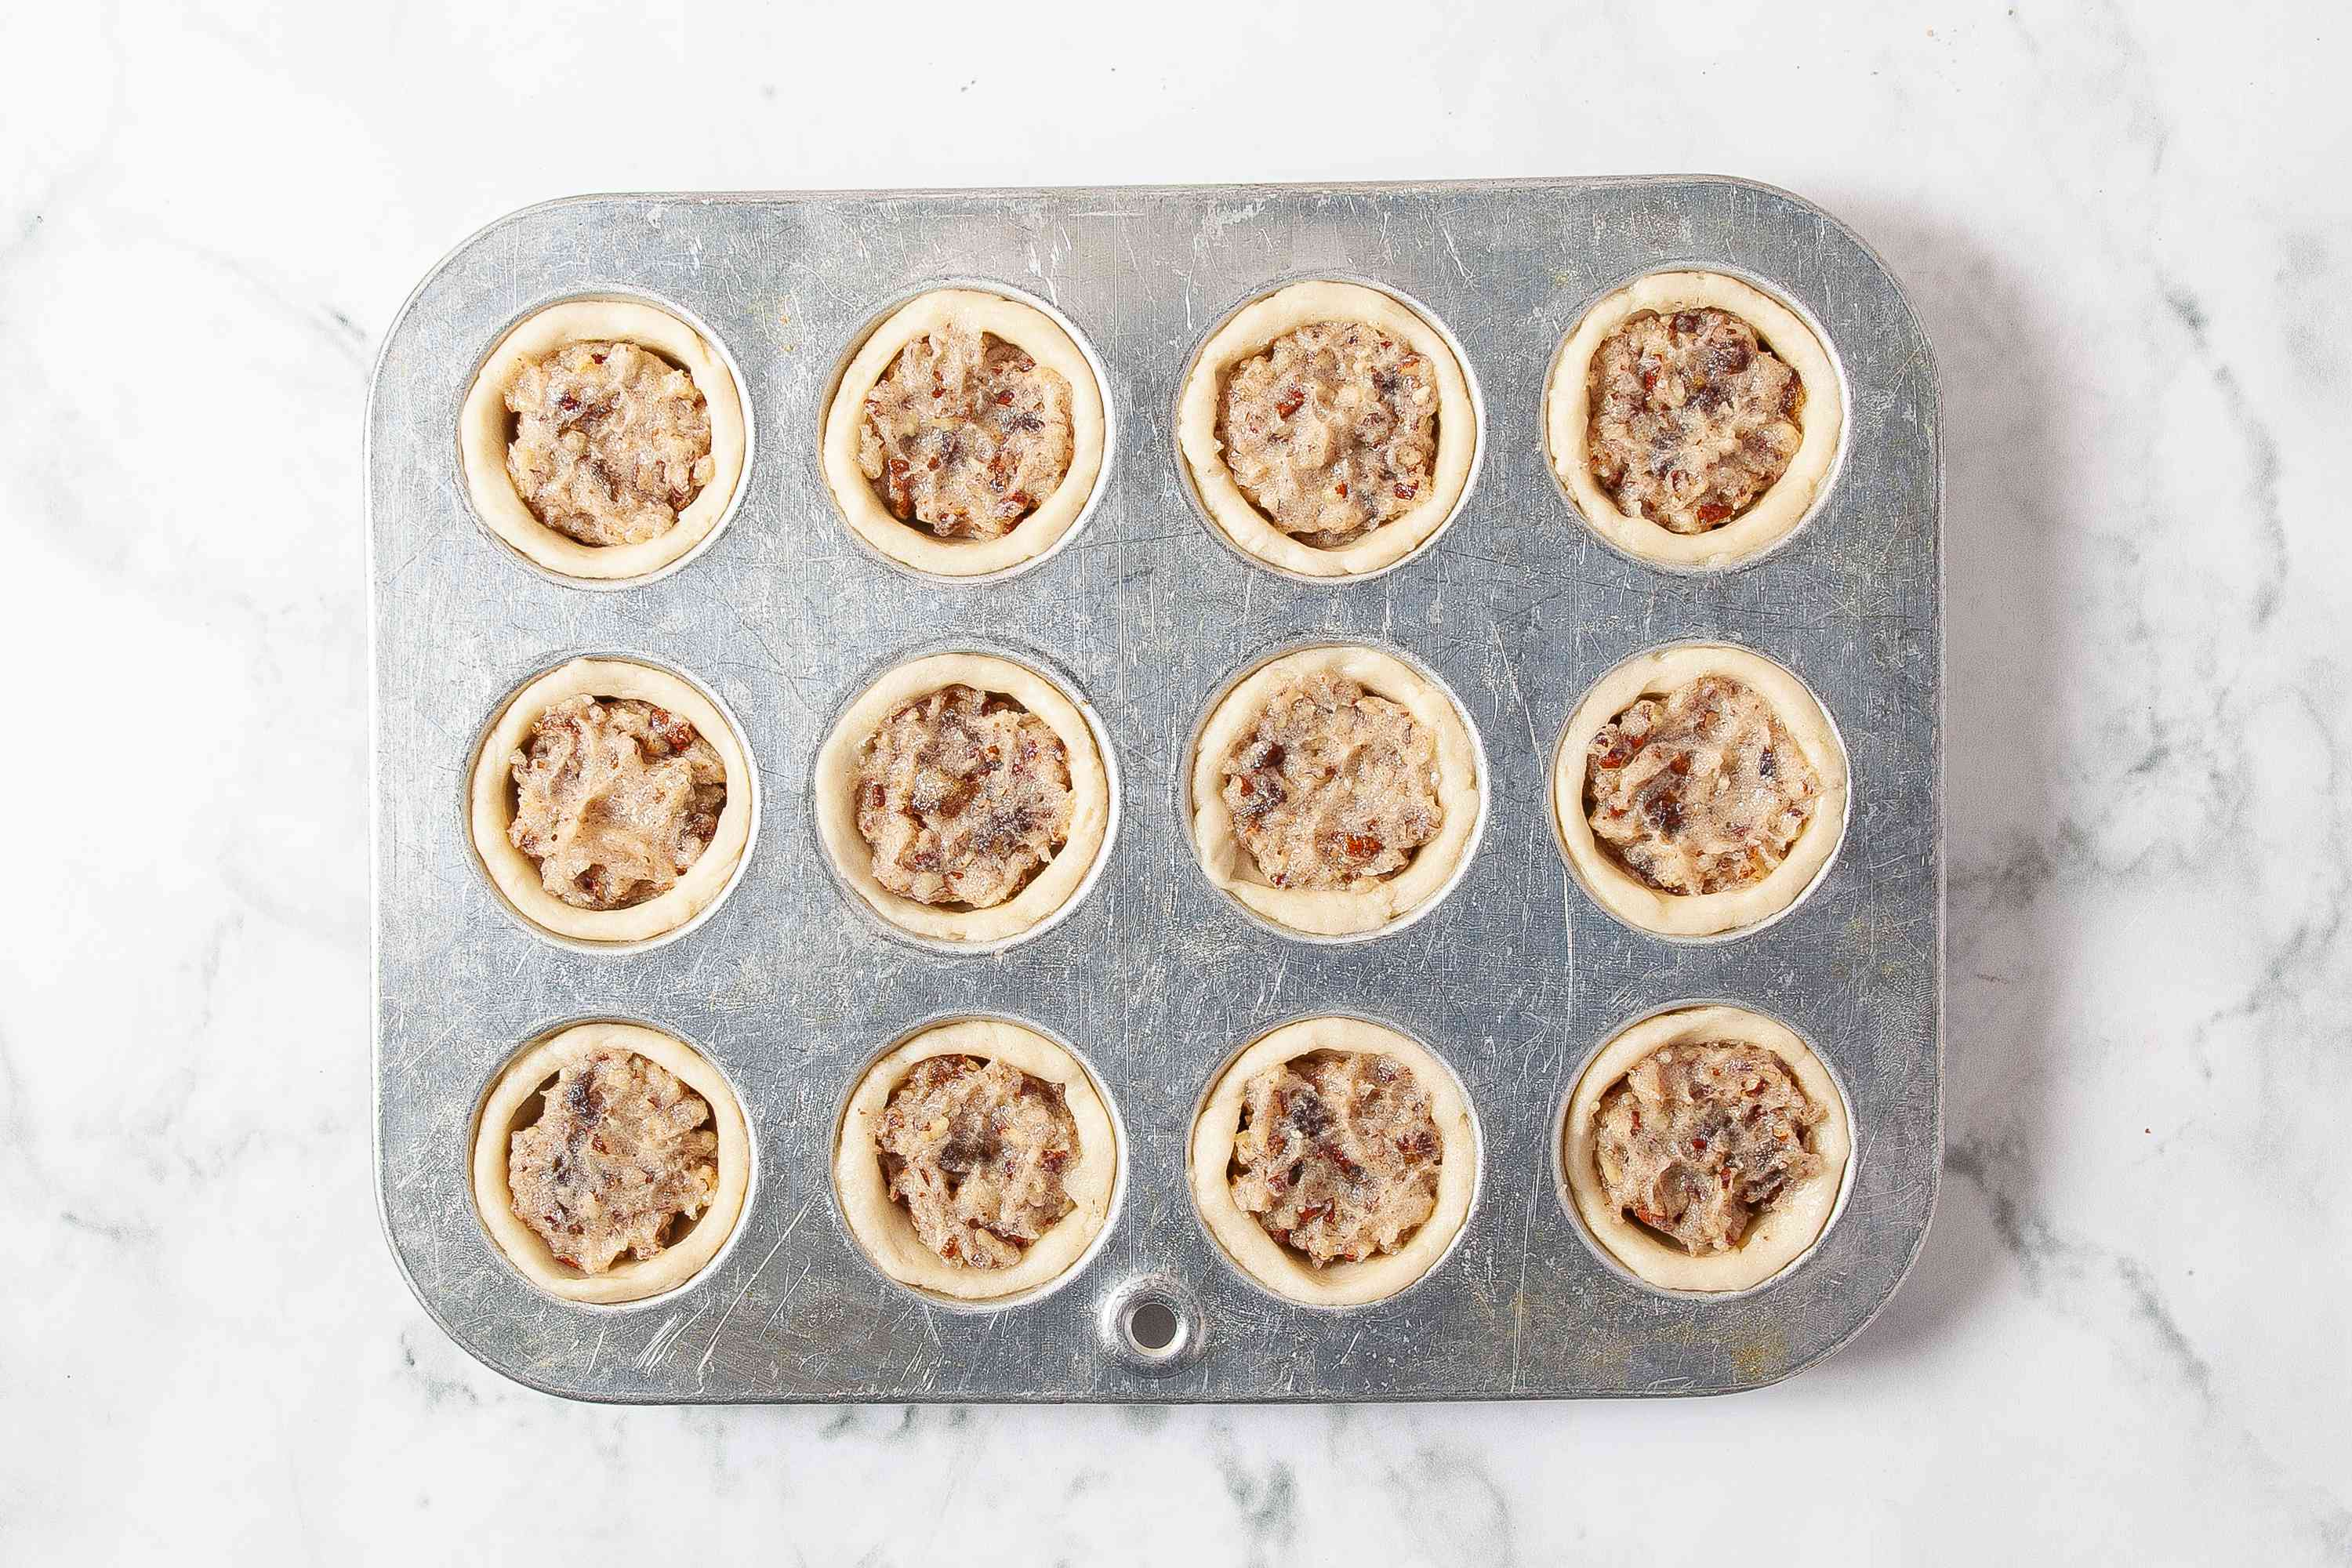 Pecan Tassies unbaked in a muffin tin